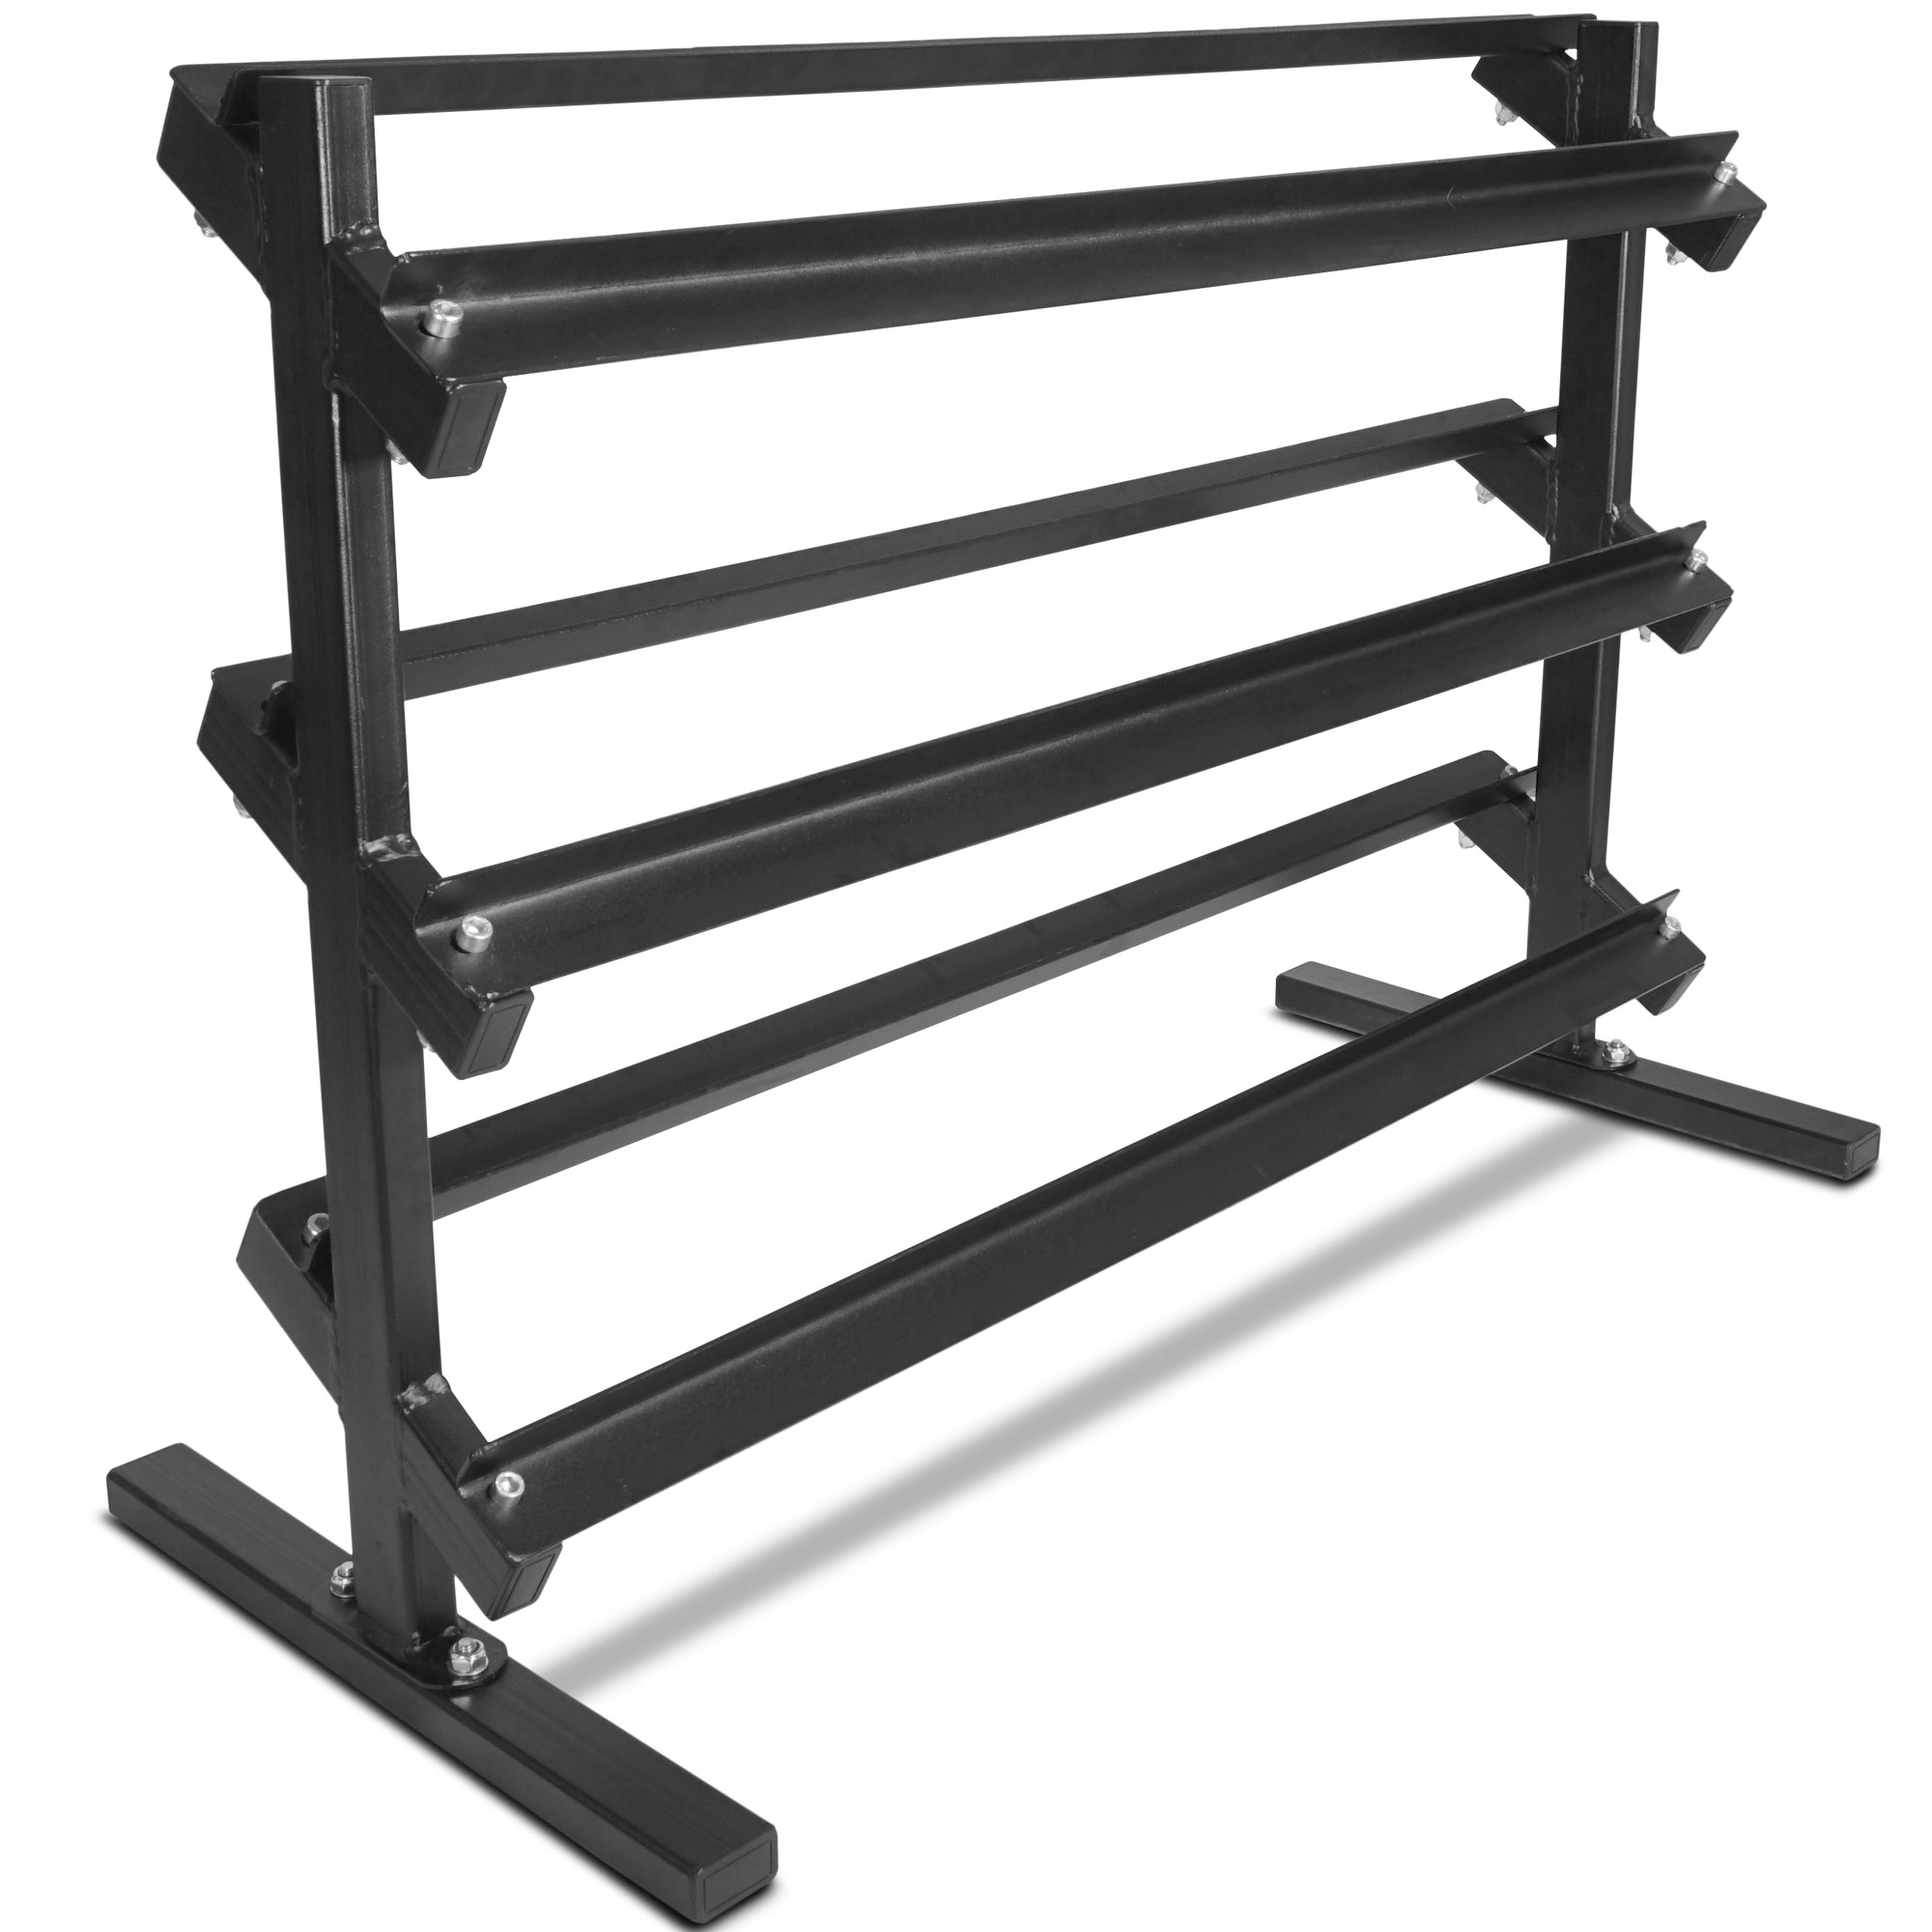 Titan Fitness 3 Tier Dumbbell Rack HD Stand for Workout Weights - Factory Defect